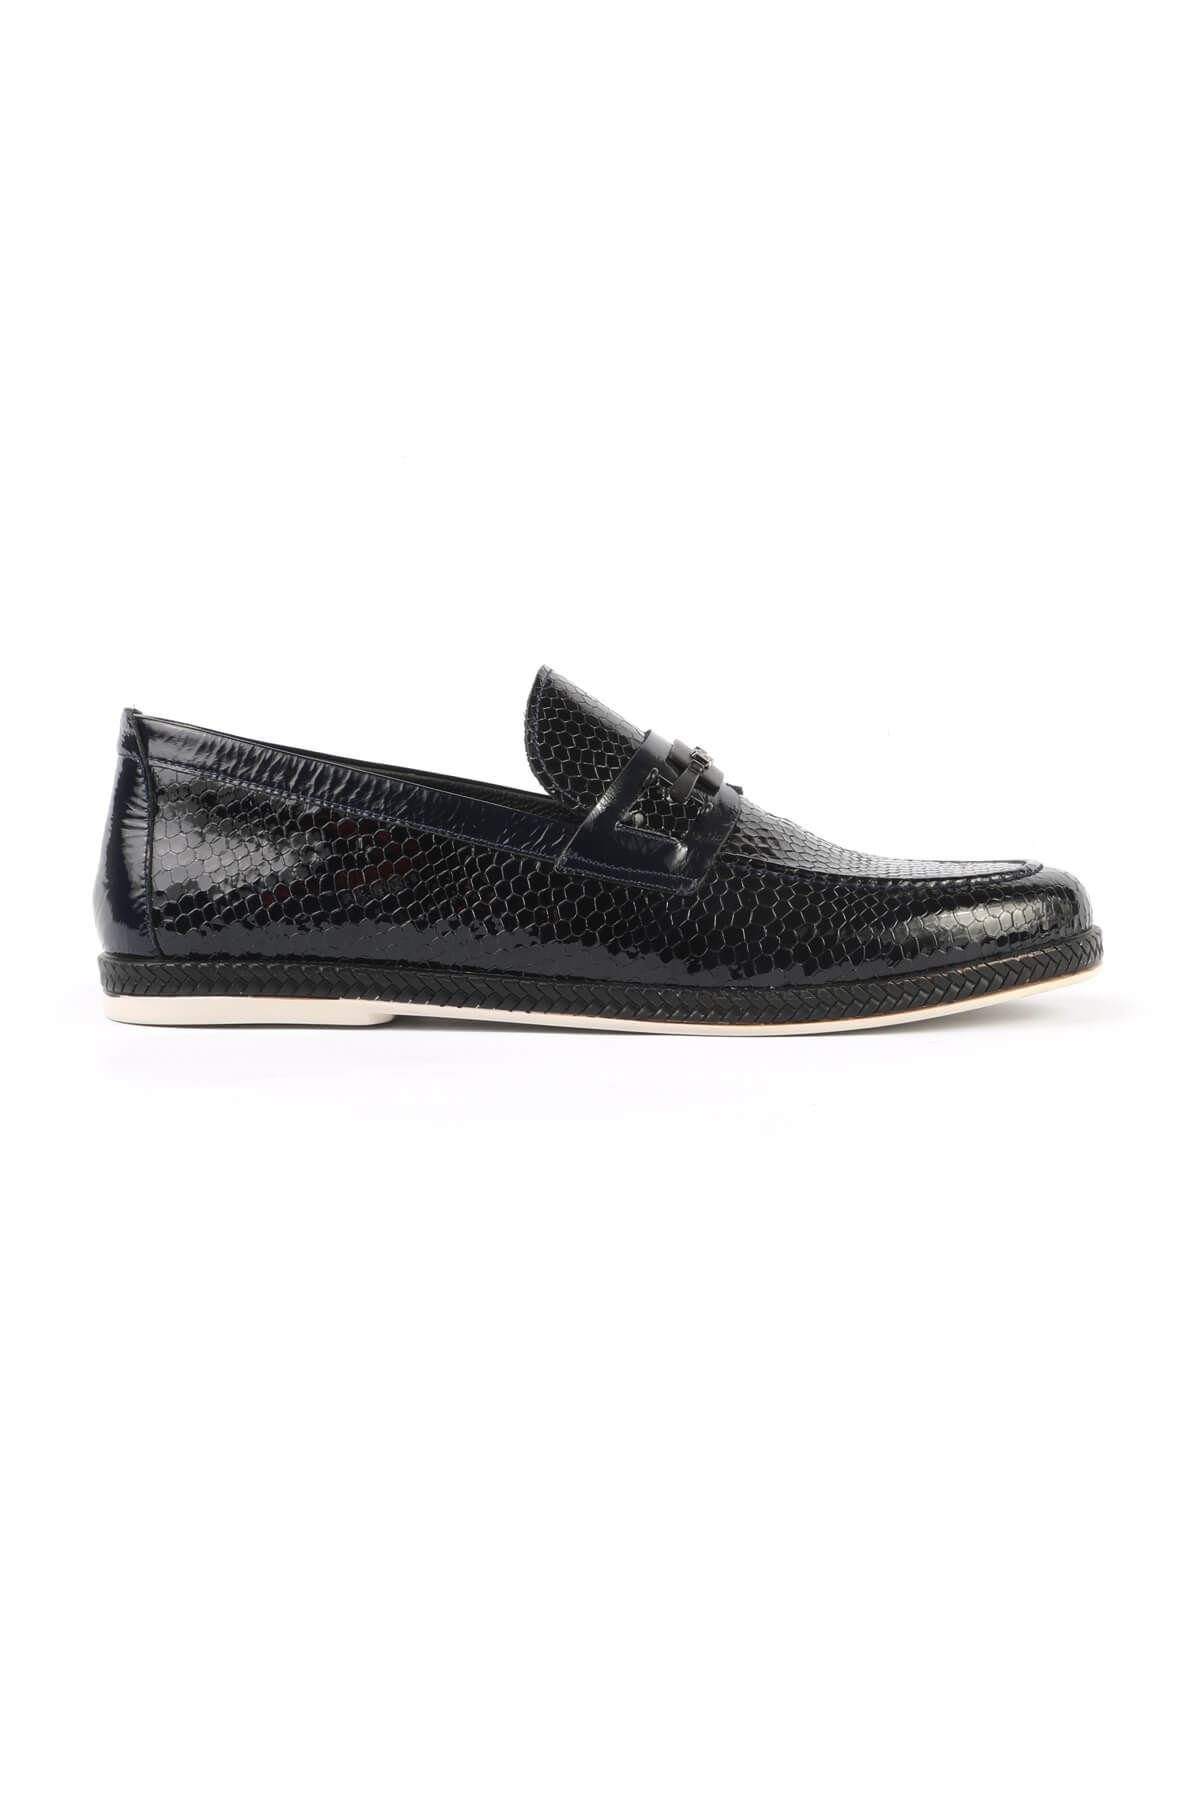 Libero C822 Navy Blue Loafer Shoes